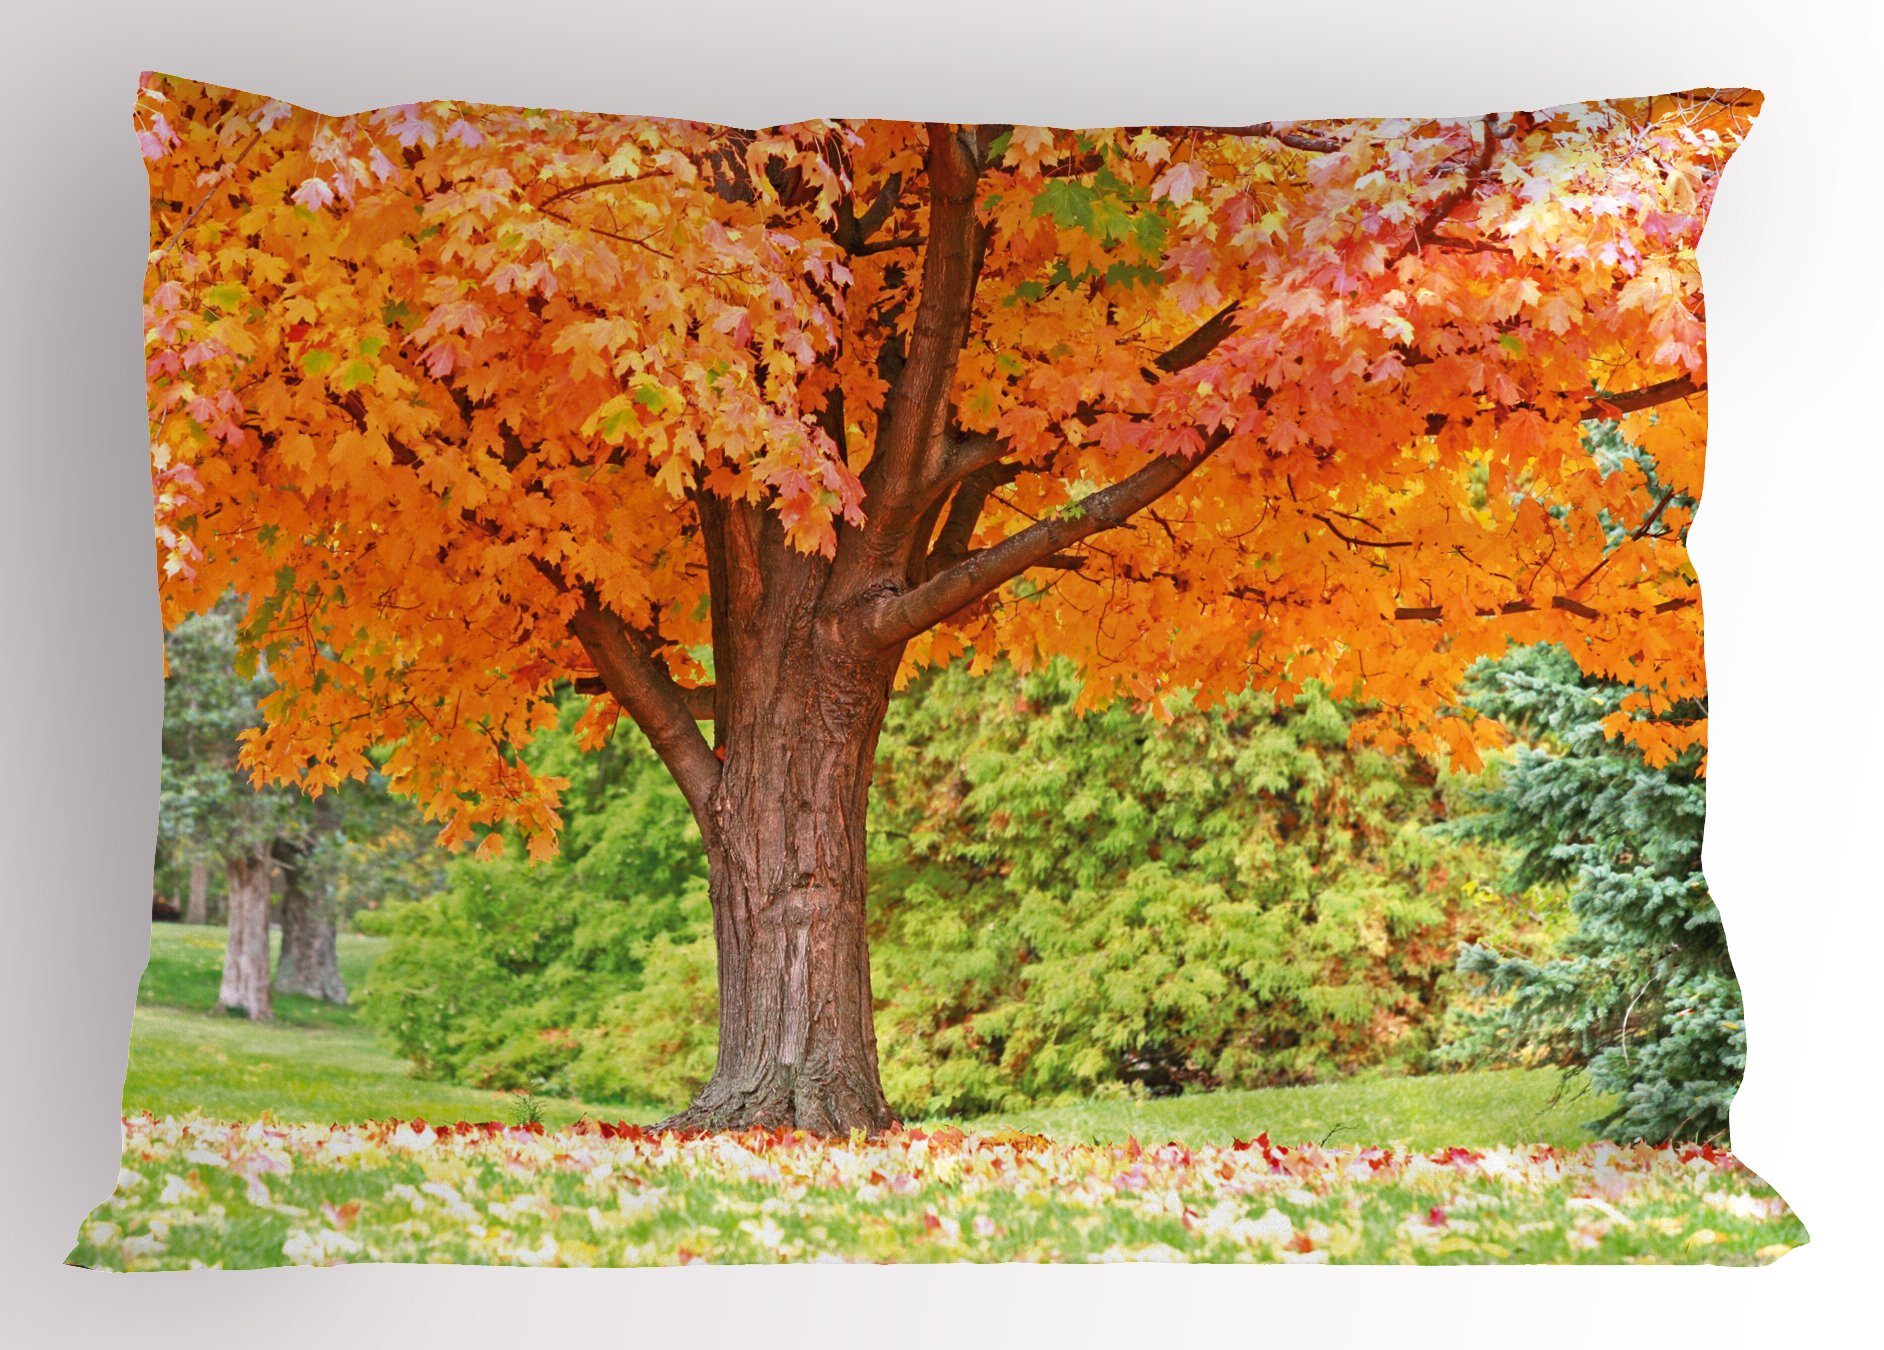 Lunarable Nature Pillow Sham, Vibrant Tree Forest Autumn Season Fall in Woods Scenic Scenery Landscape, Decorative Standard King Size Printed Pillowcase, 36 X 20 inches, Orange Green Brown by Lunarable (Image #1)